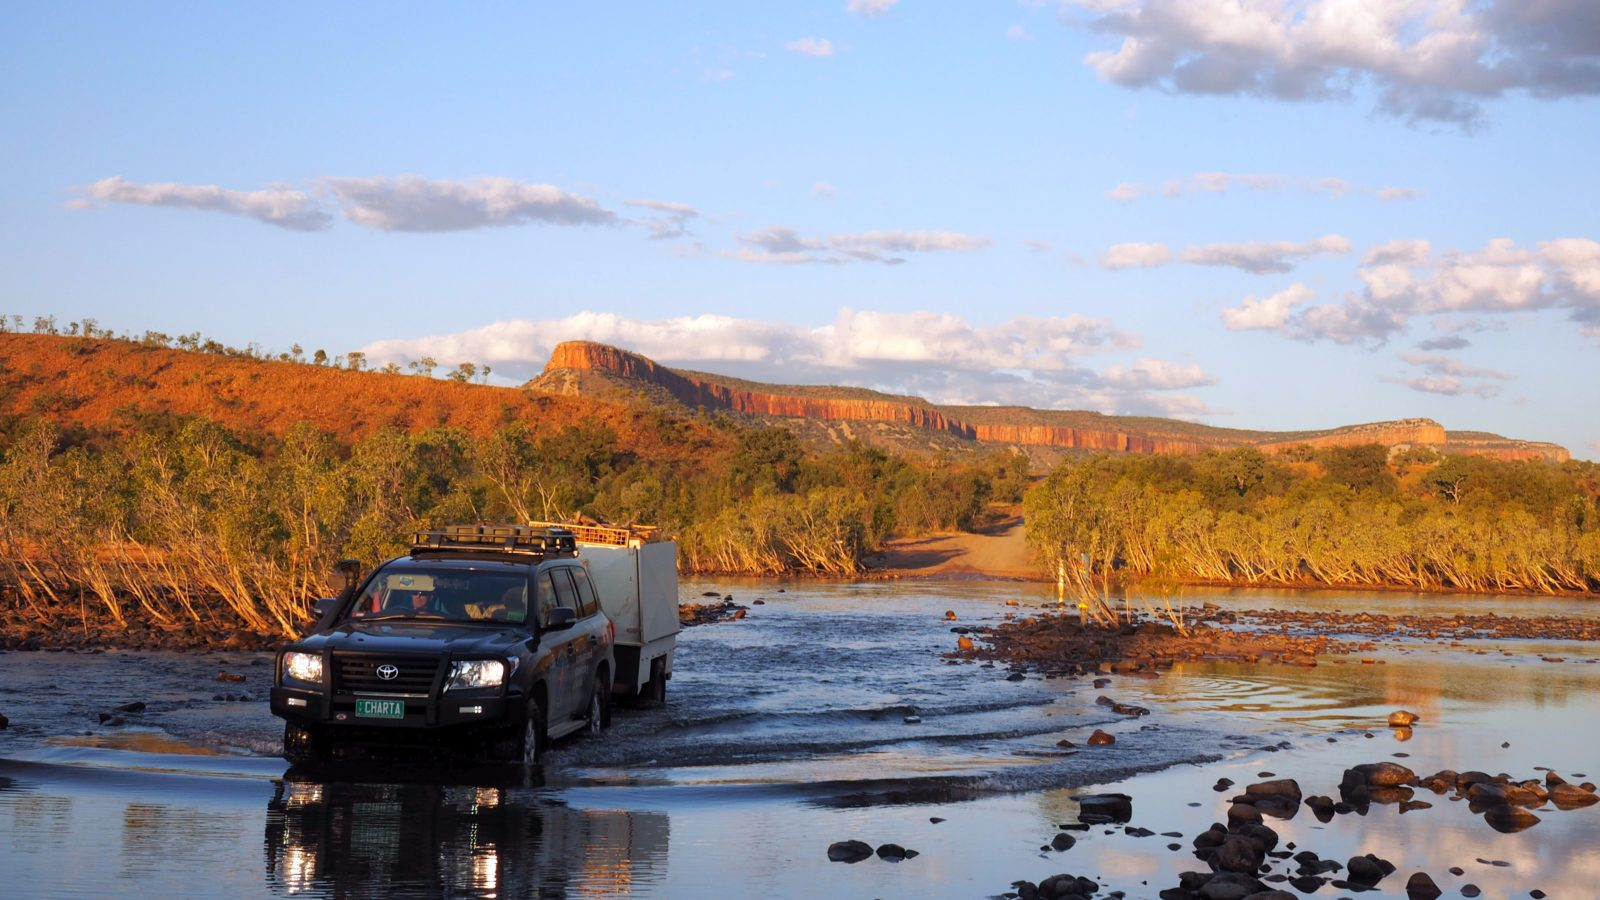 Charter North Vehicle at Pentecoast River Crossing- the Kimberley